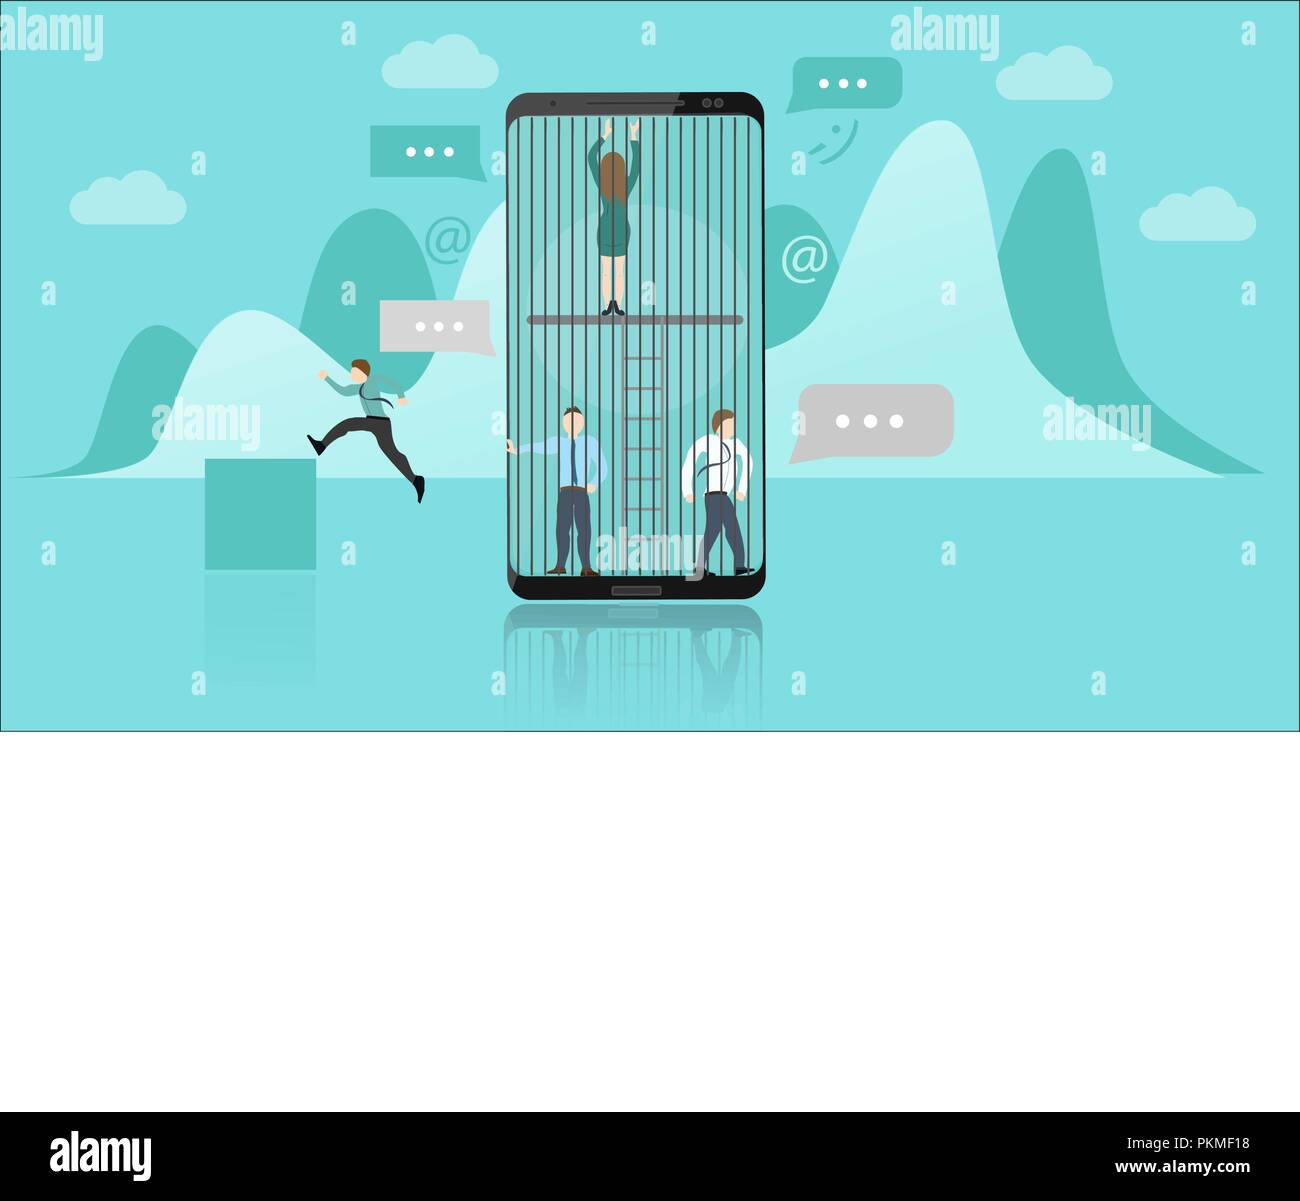 Smartphone Addiction Concept. The People Trapped Inside the Smartphone Represents the Addiction. They Cant Escape. Flat Style Vector Illustration - Stock Image